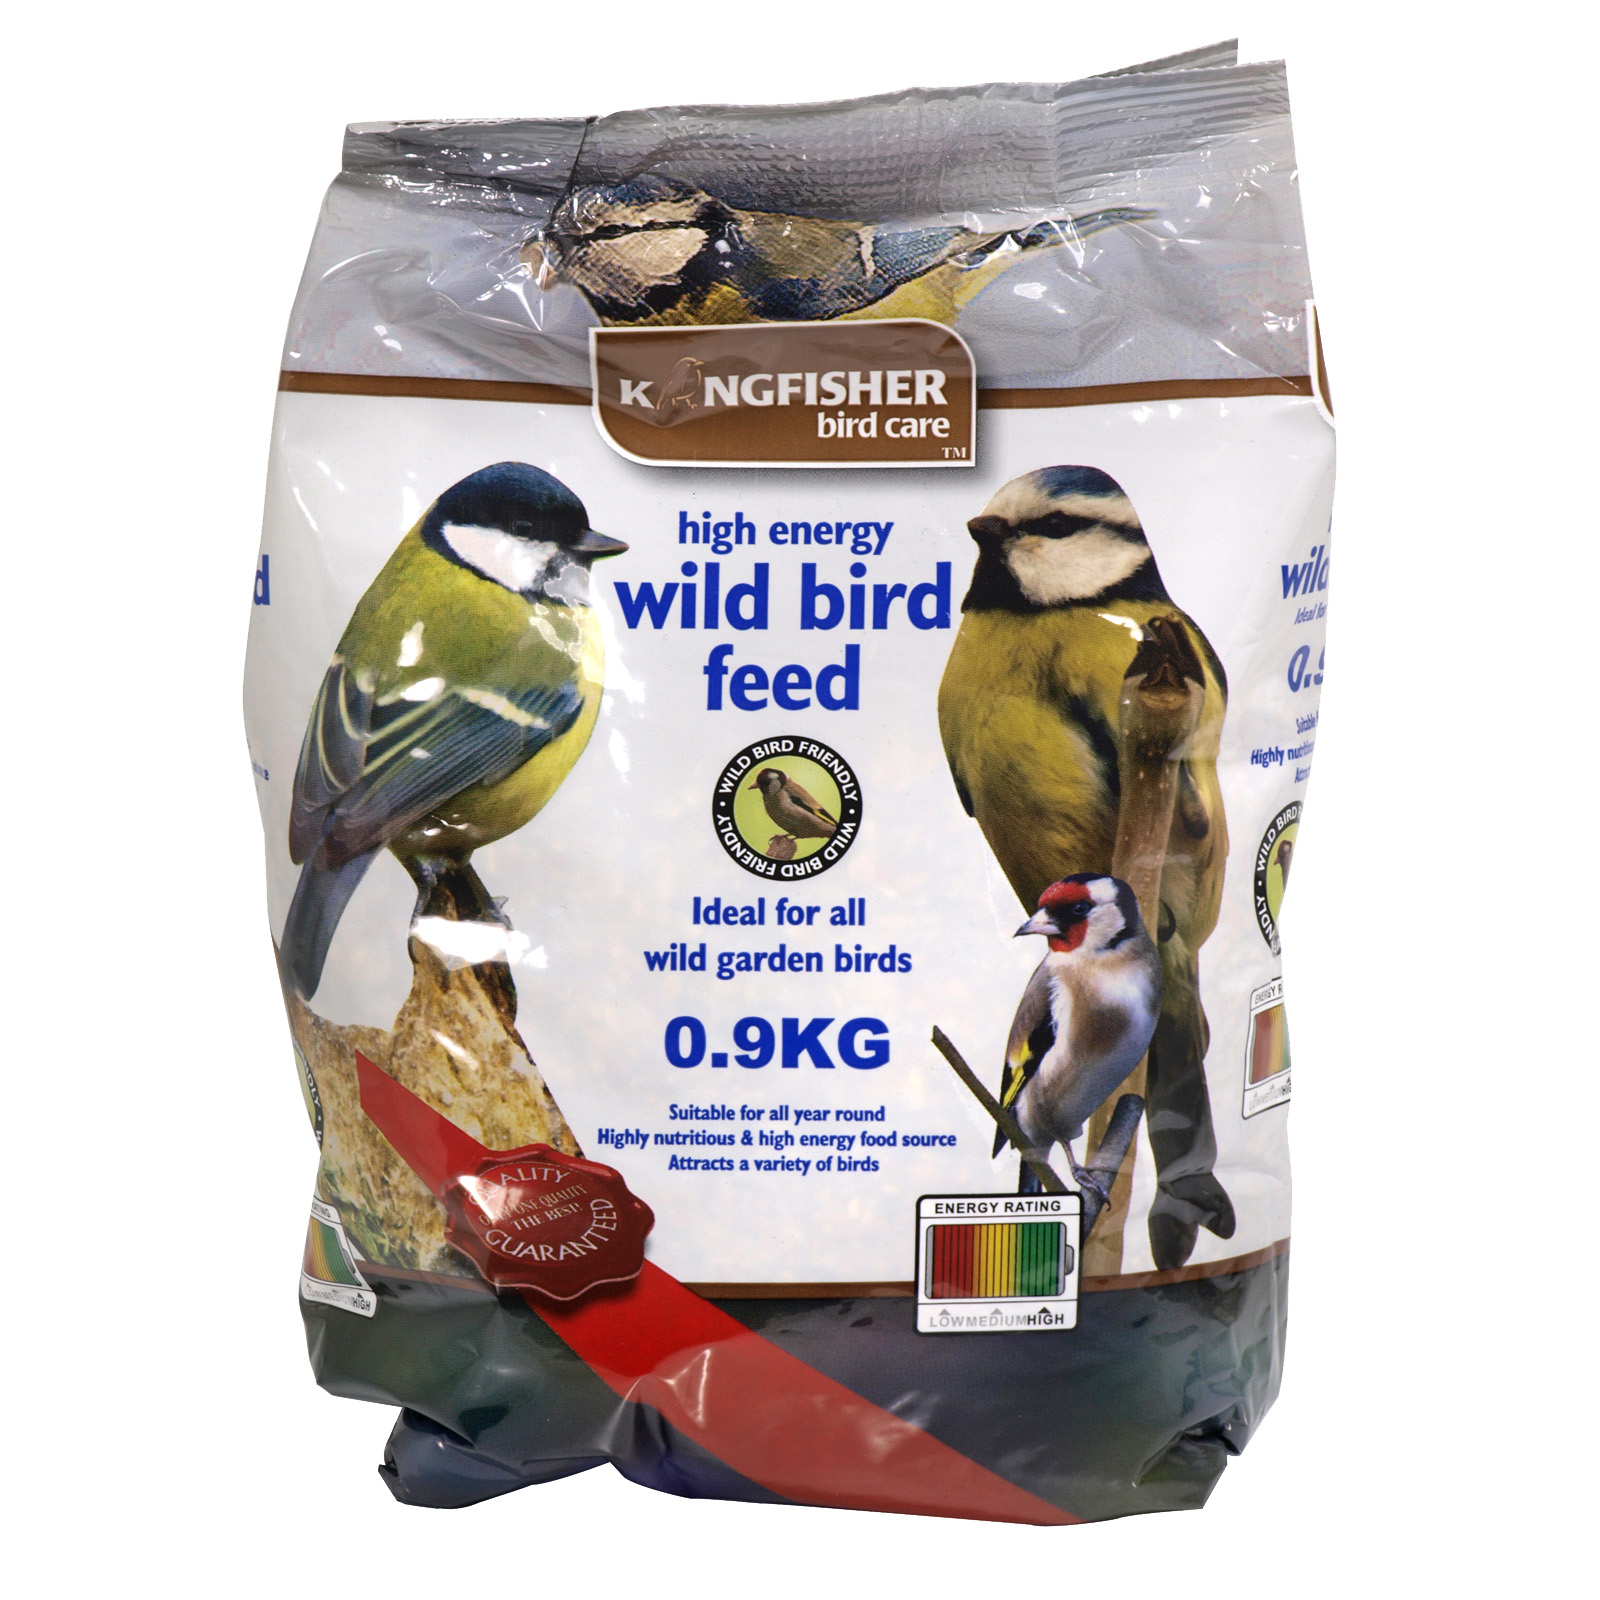 KINGFISHER WILD BIRD FEED HI-ENERGY